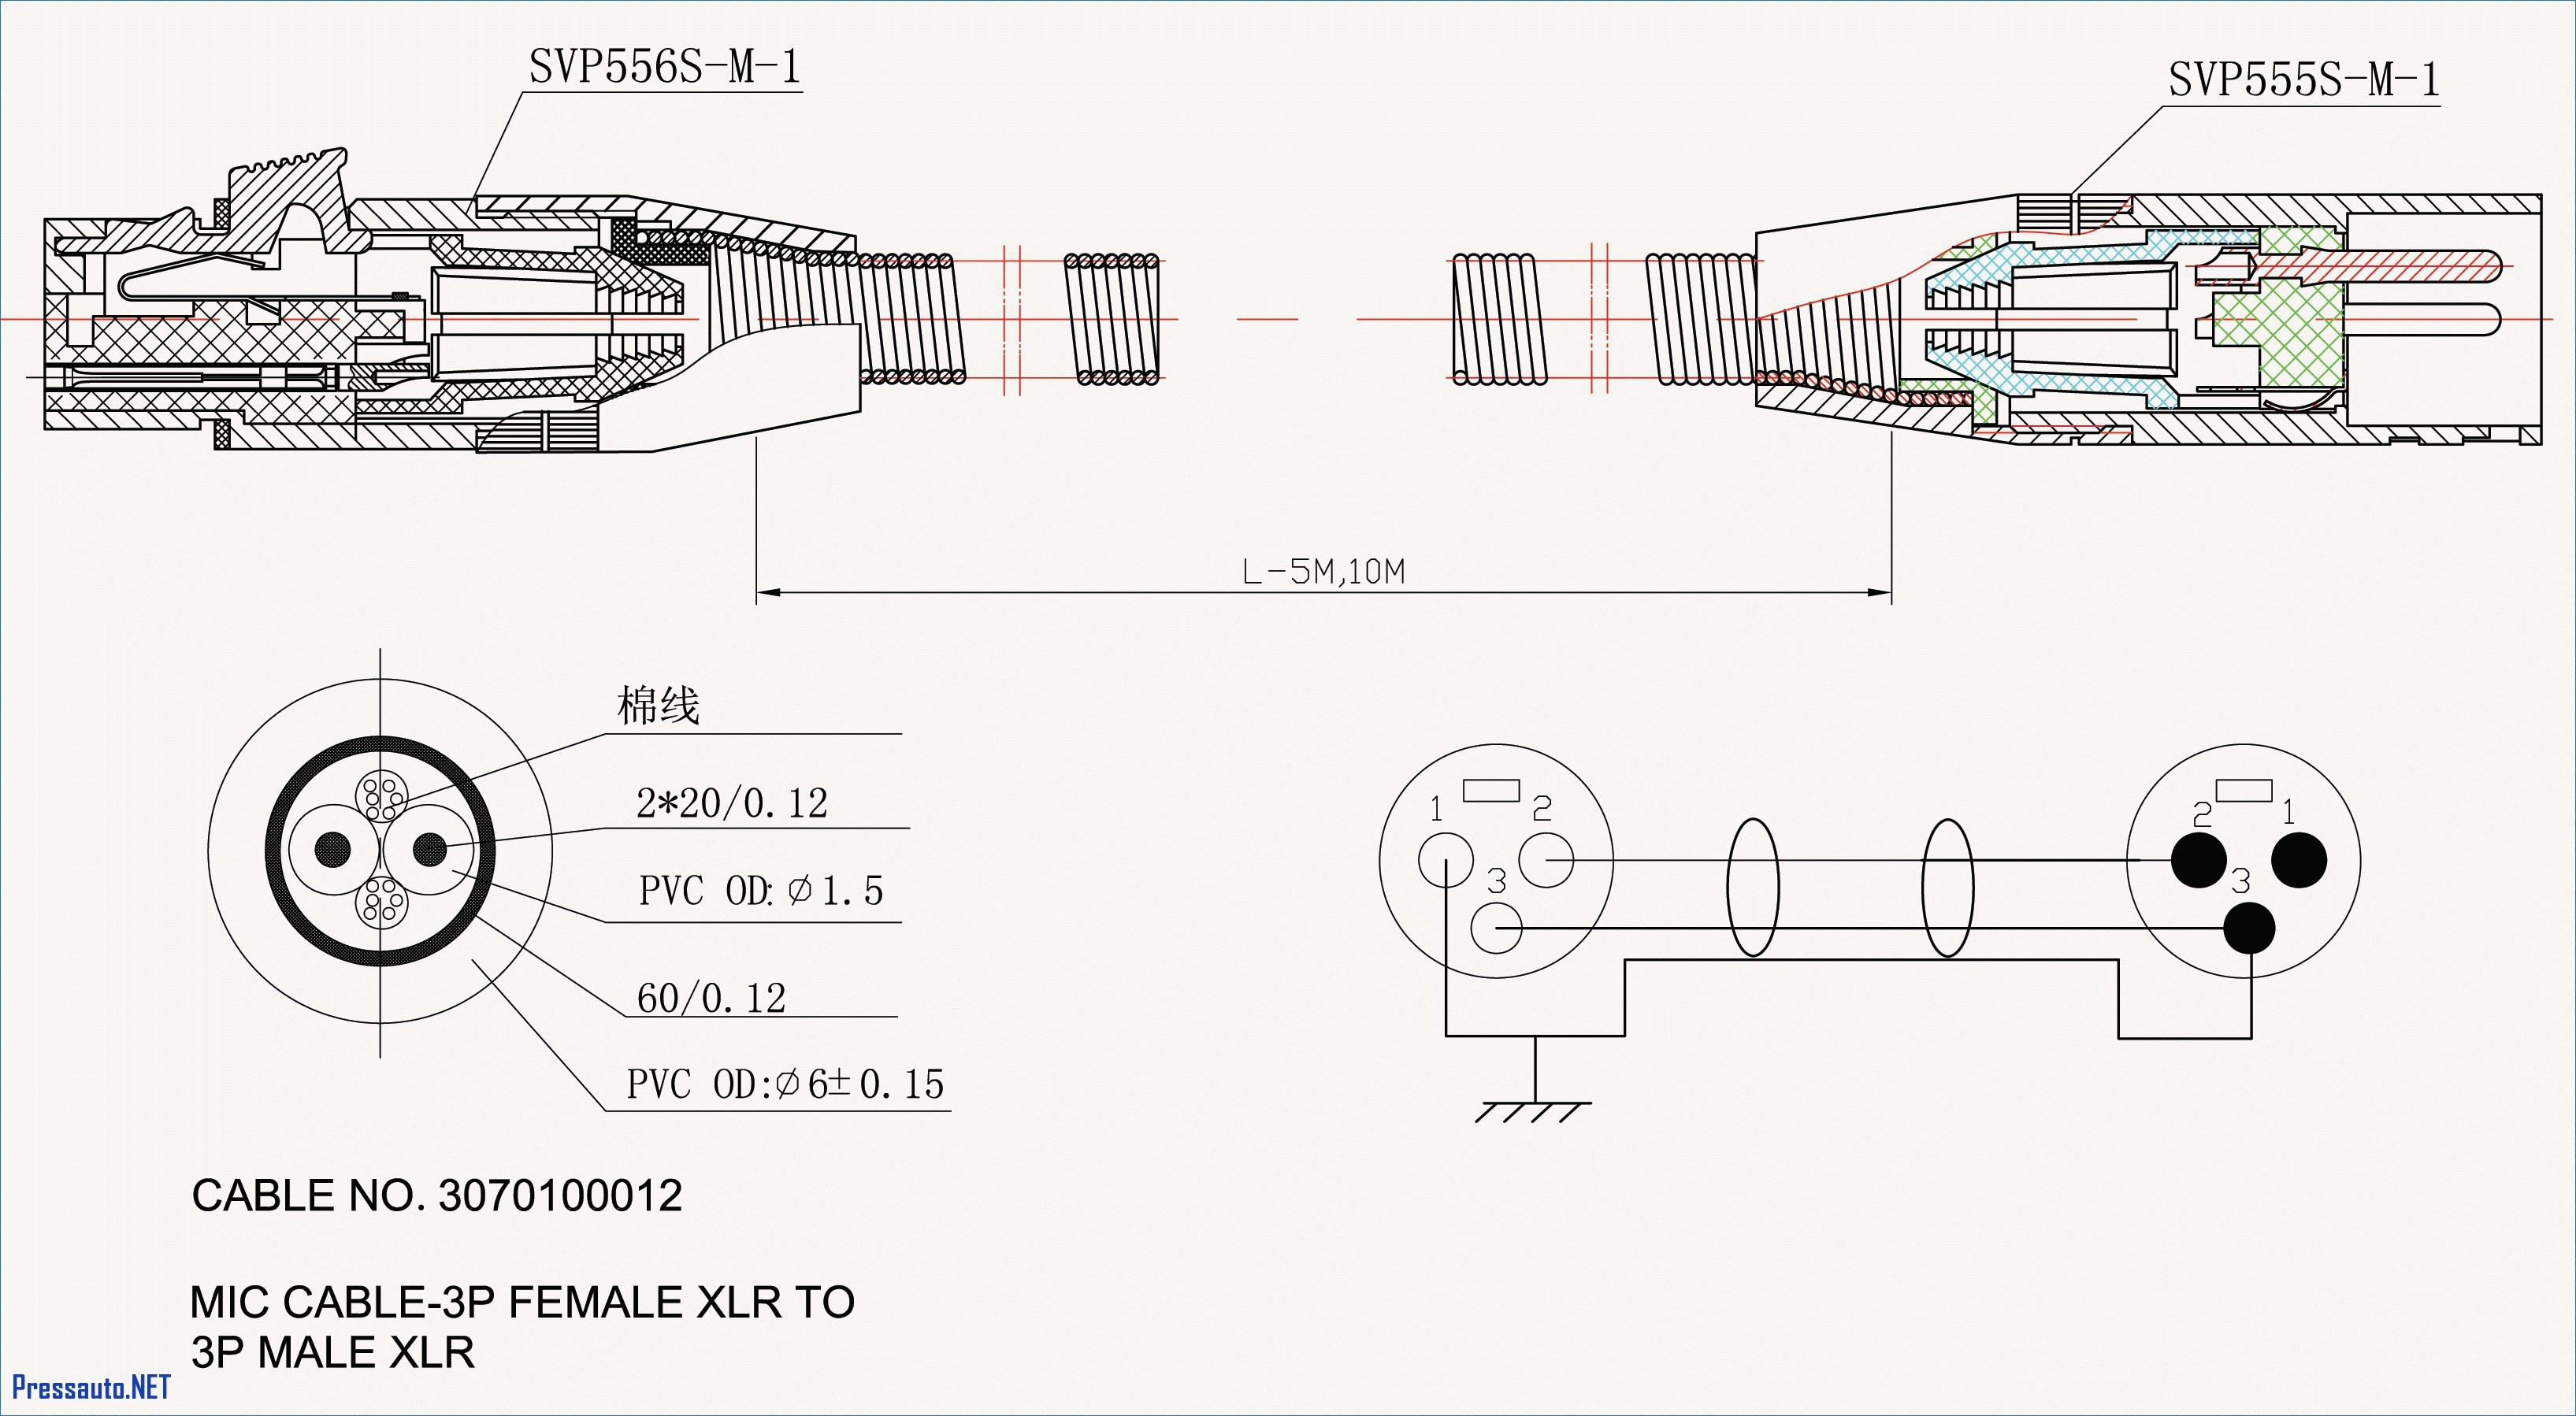 56 Best Of Sub Panel Wiring Diagram Images   Wiring Diagram - Electrical Sub Panel Wiring Diagram